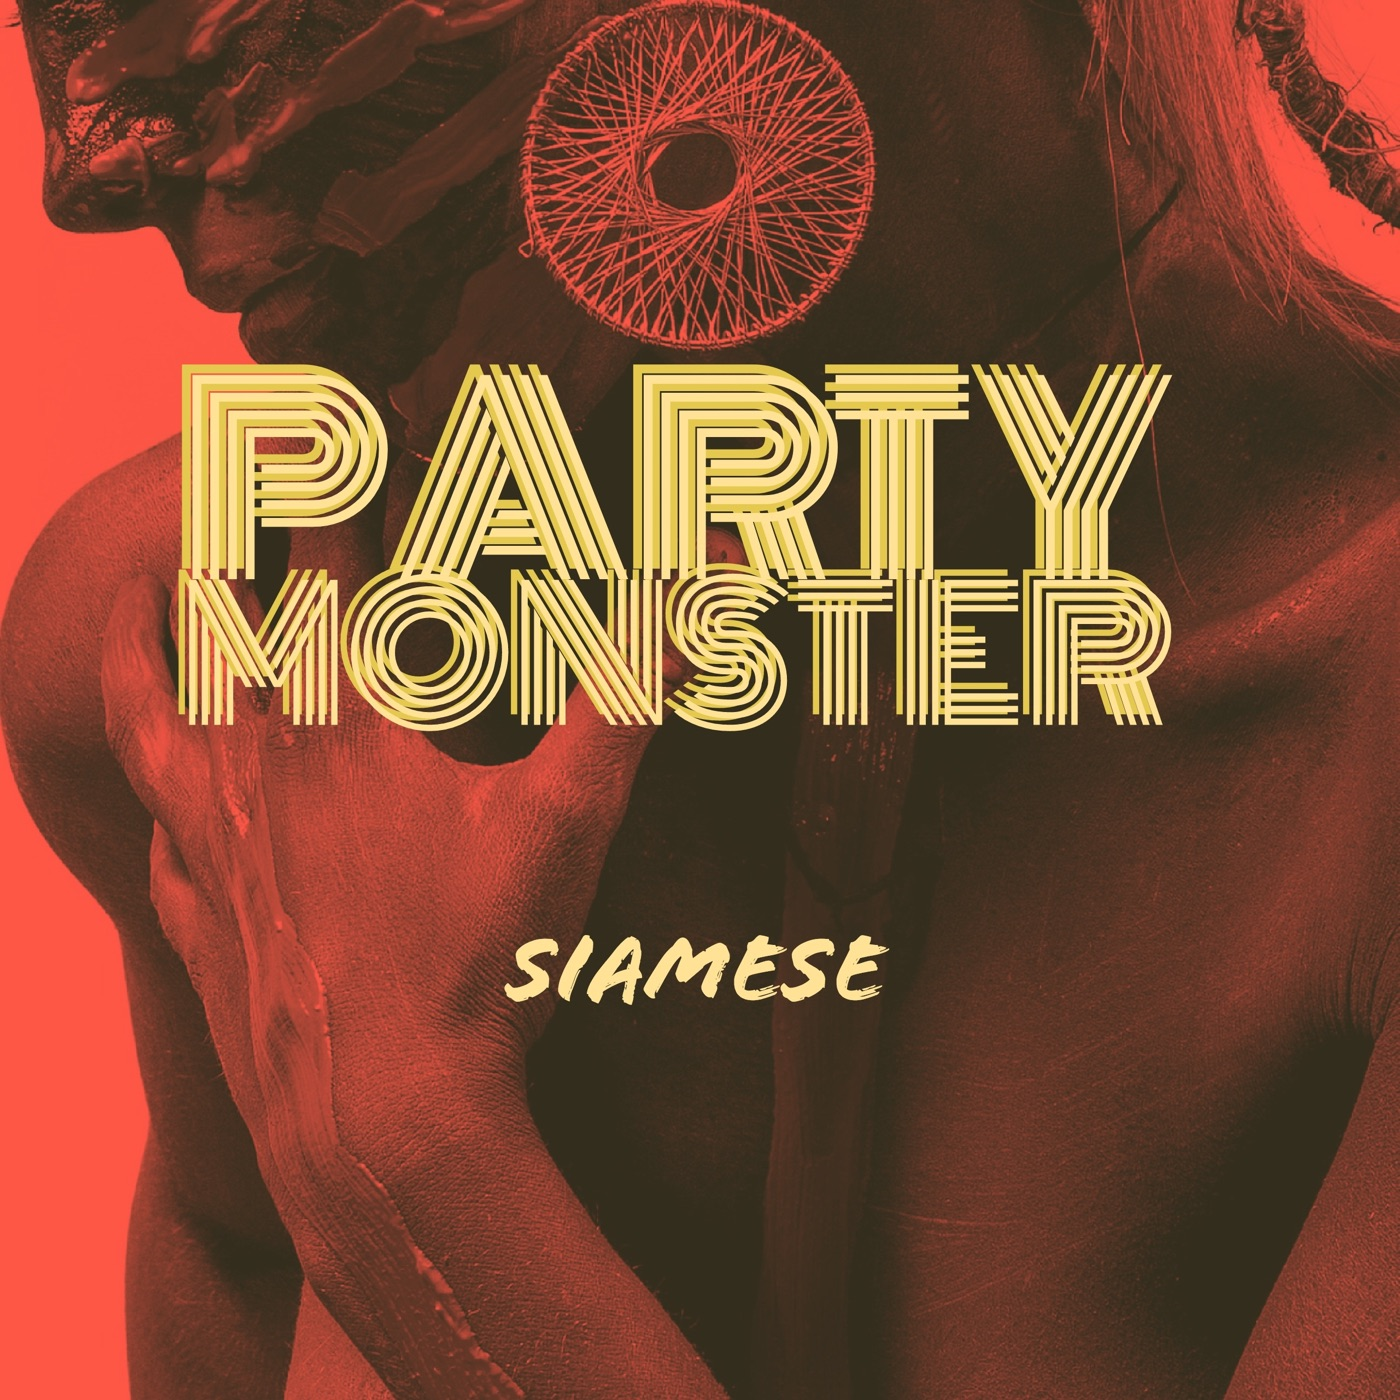 Siamese - Party Monster [Single] (2018)